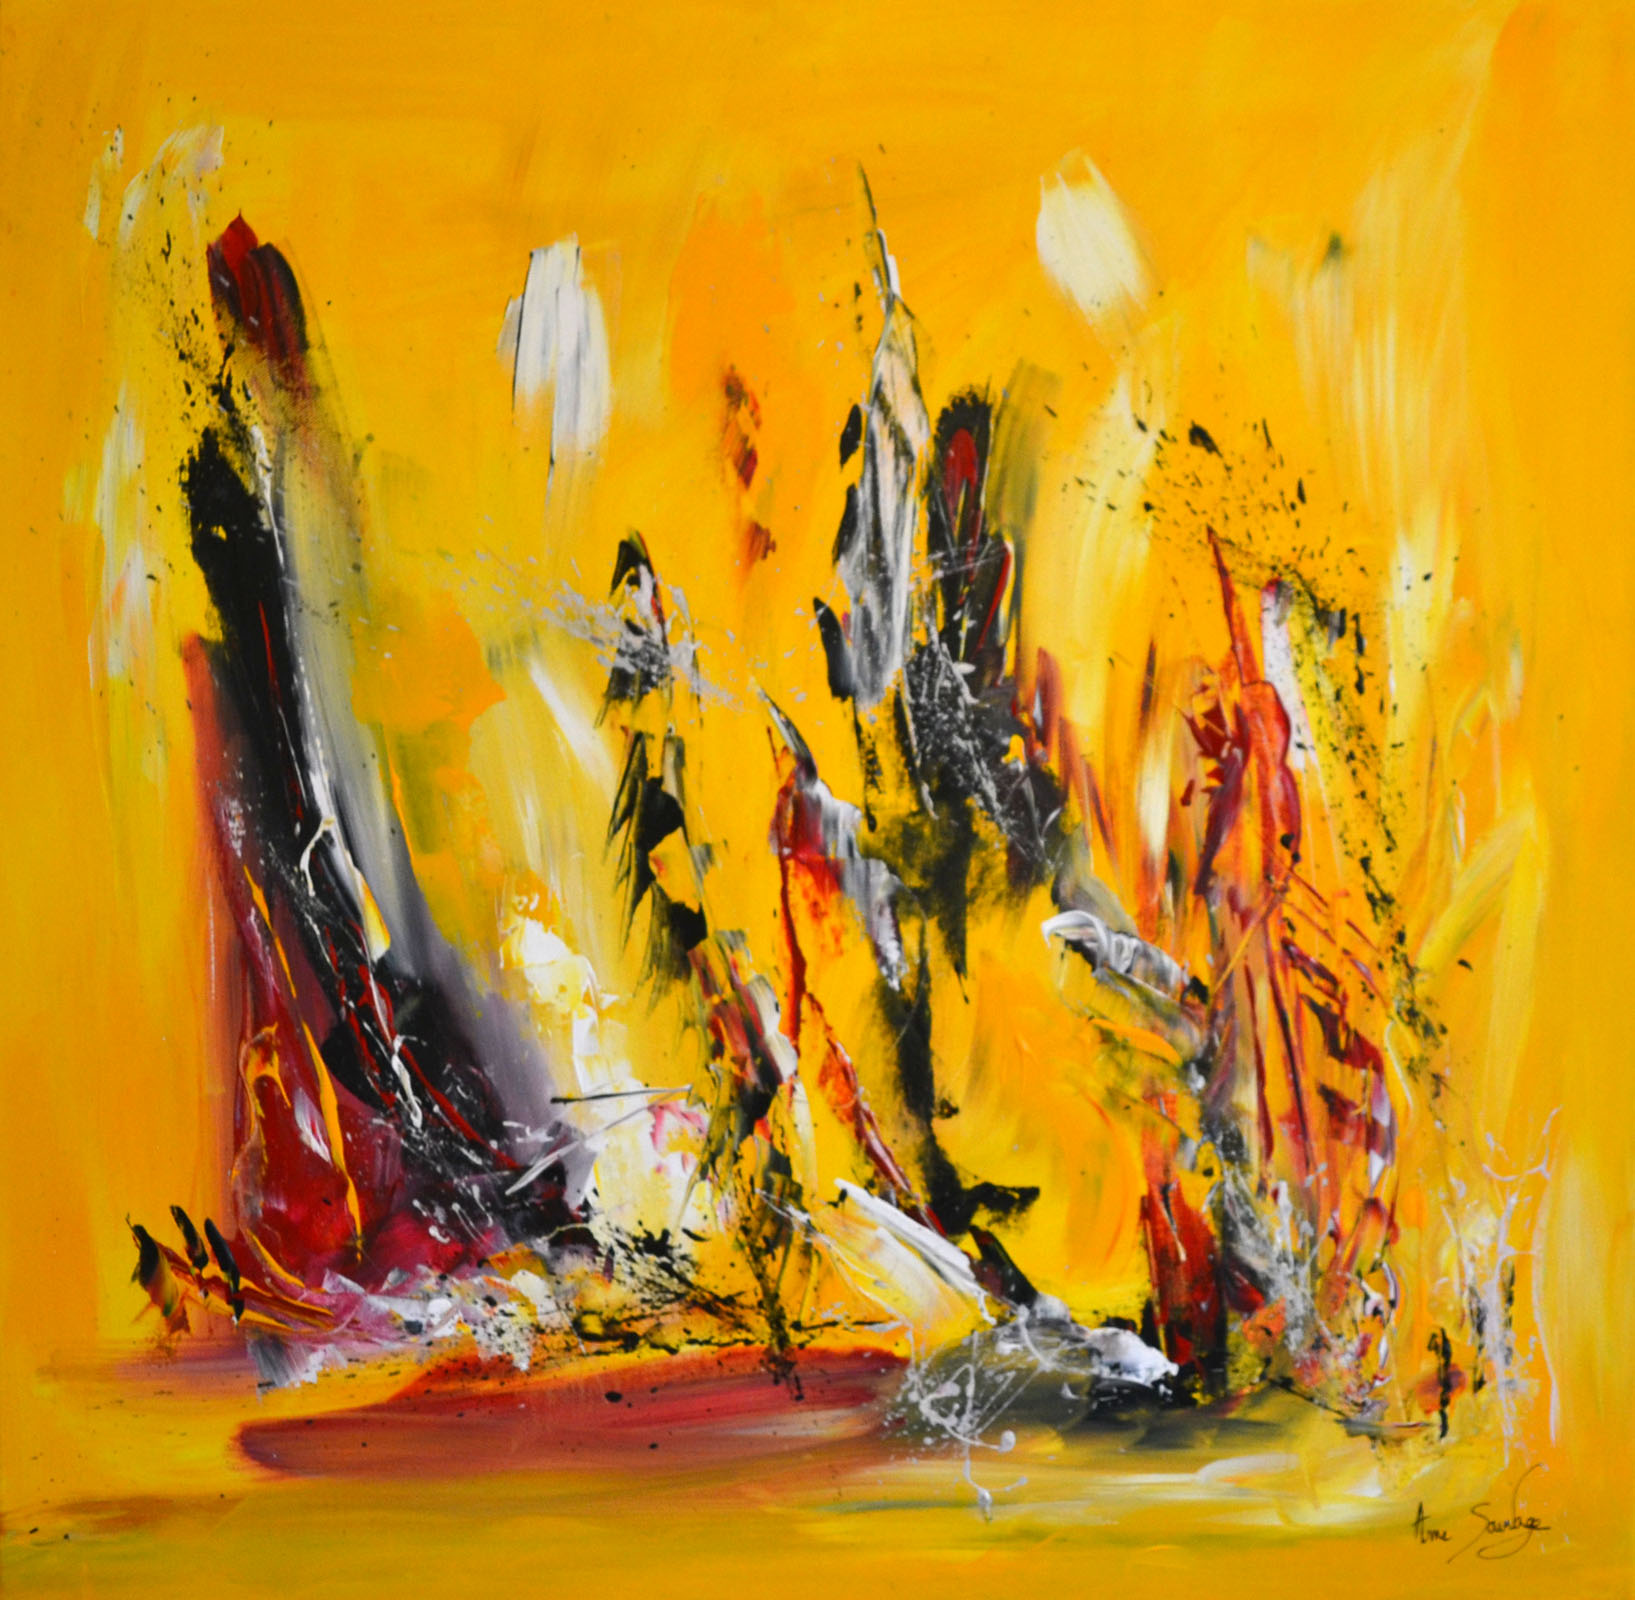 Anthony Chambaud Tableau Abstrait Contemporain Jaune Noir Rouge Grand Format